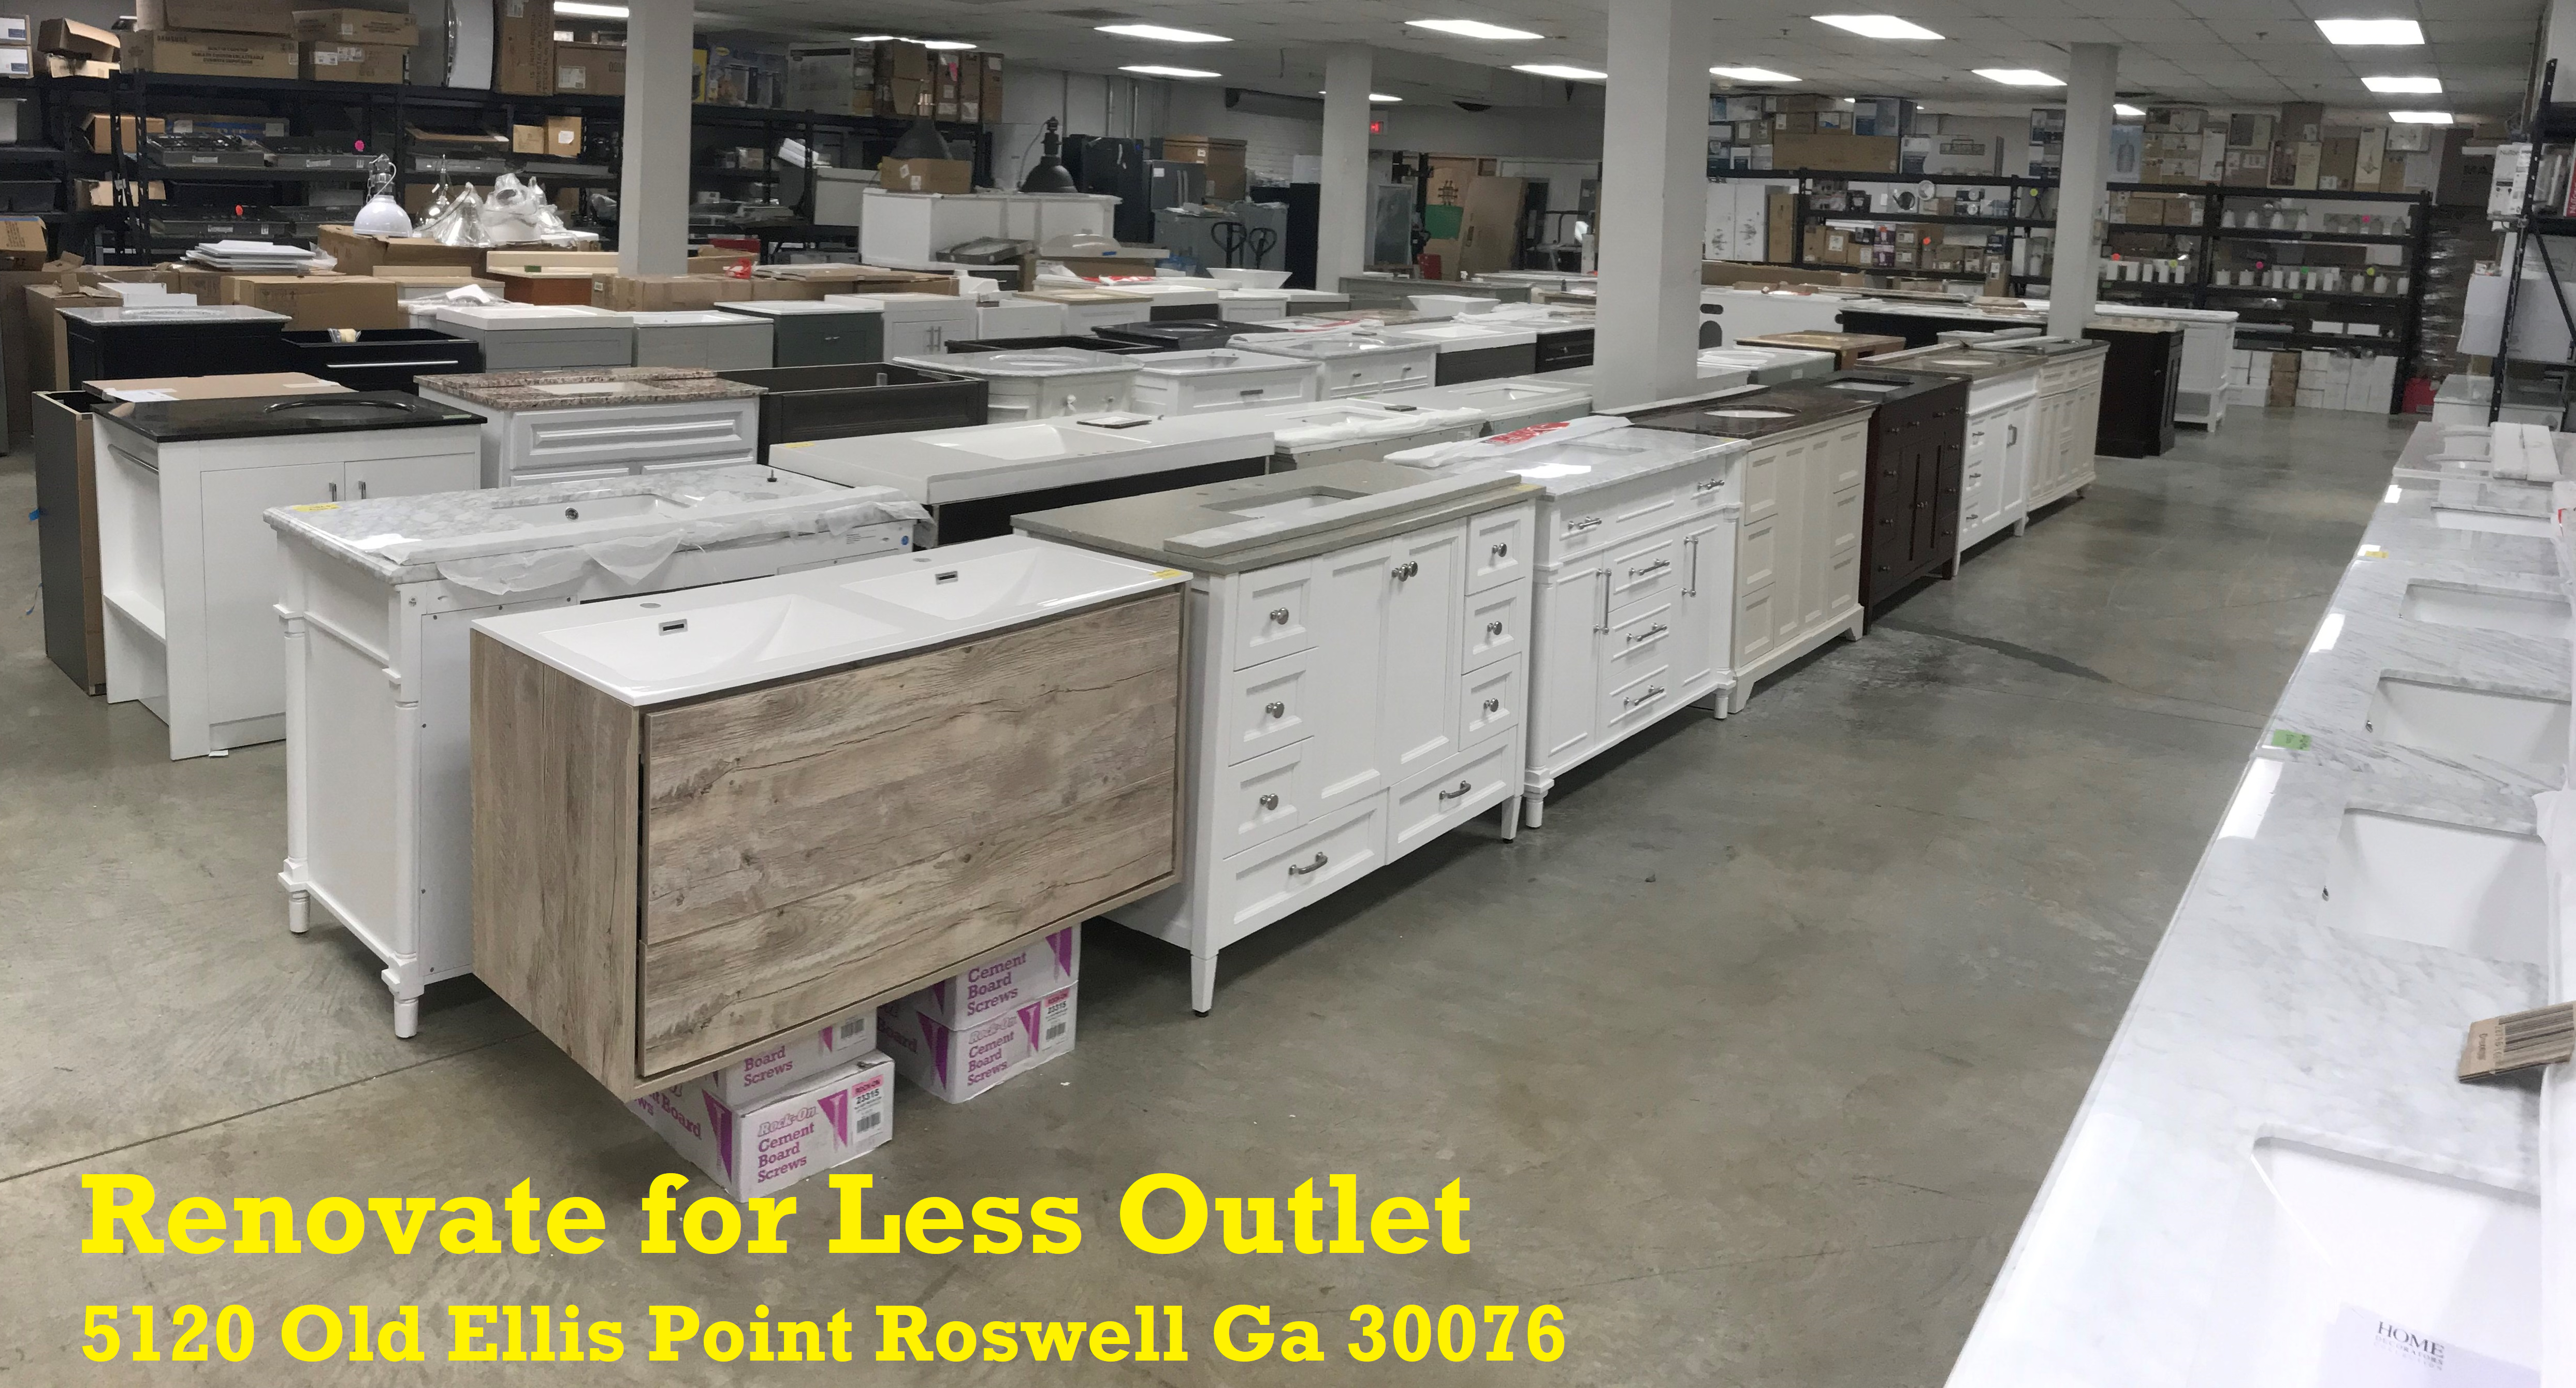 Renovate for Less Bathroom Vanity Cabinet Outlet Showroom in Roswell